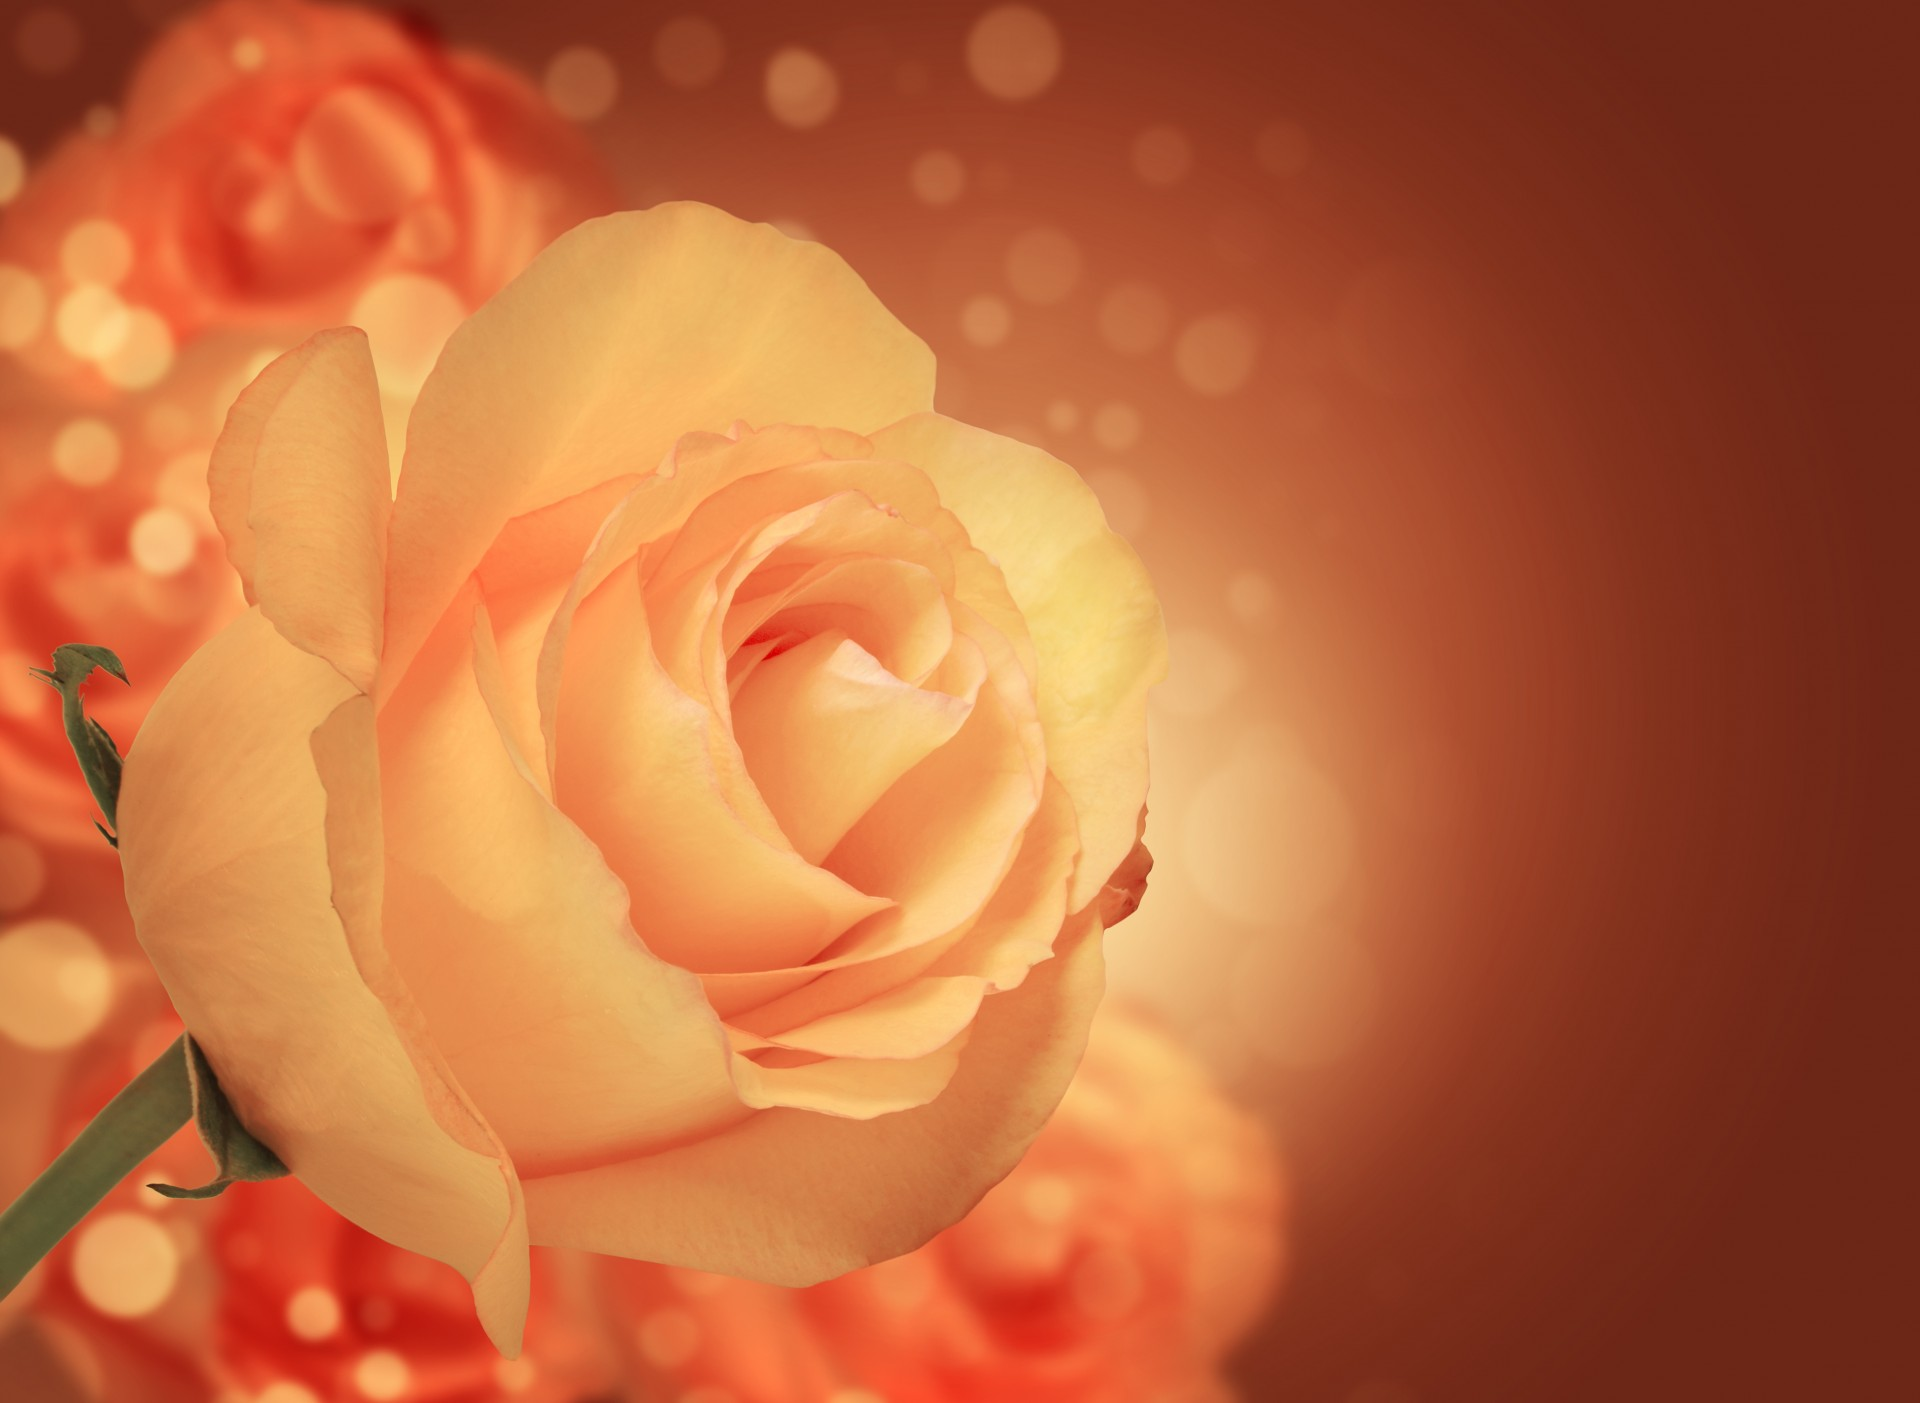 Vintage Fall Wallpaper Background With Rose Free Stock Photo Public Domain Pictures